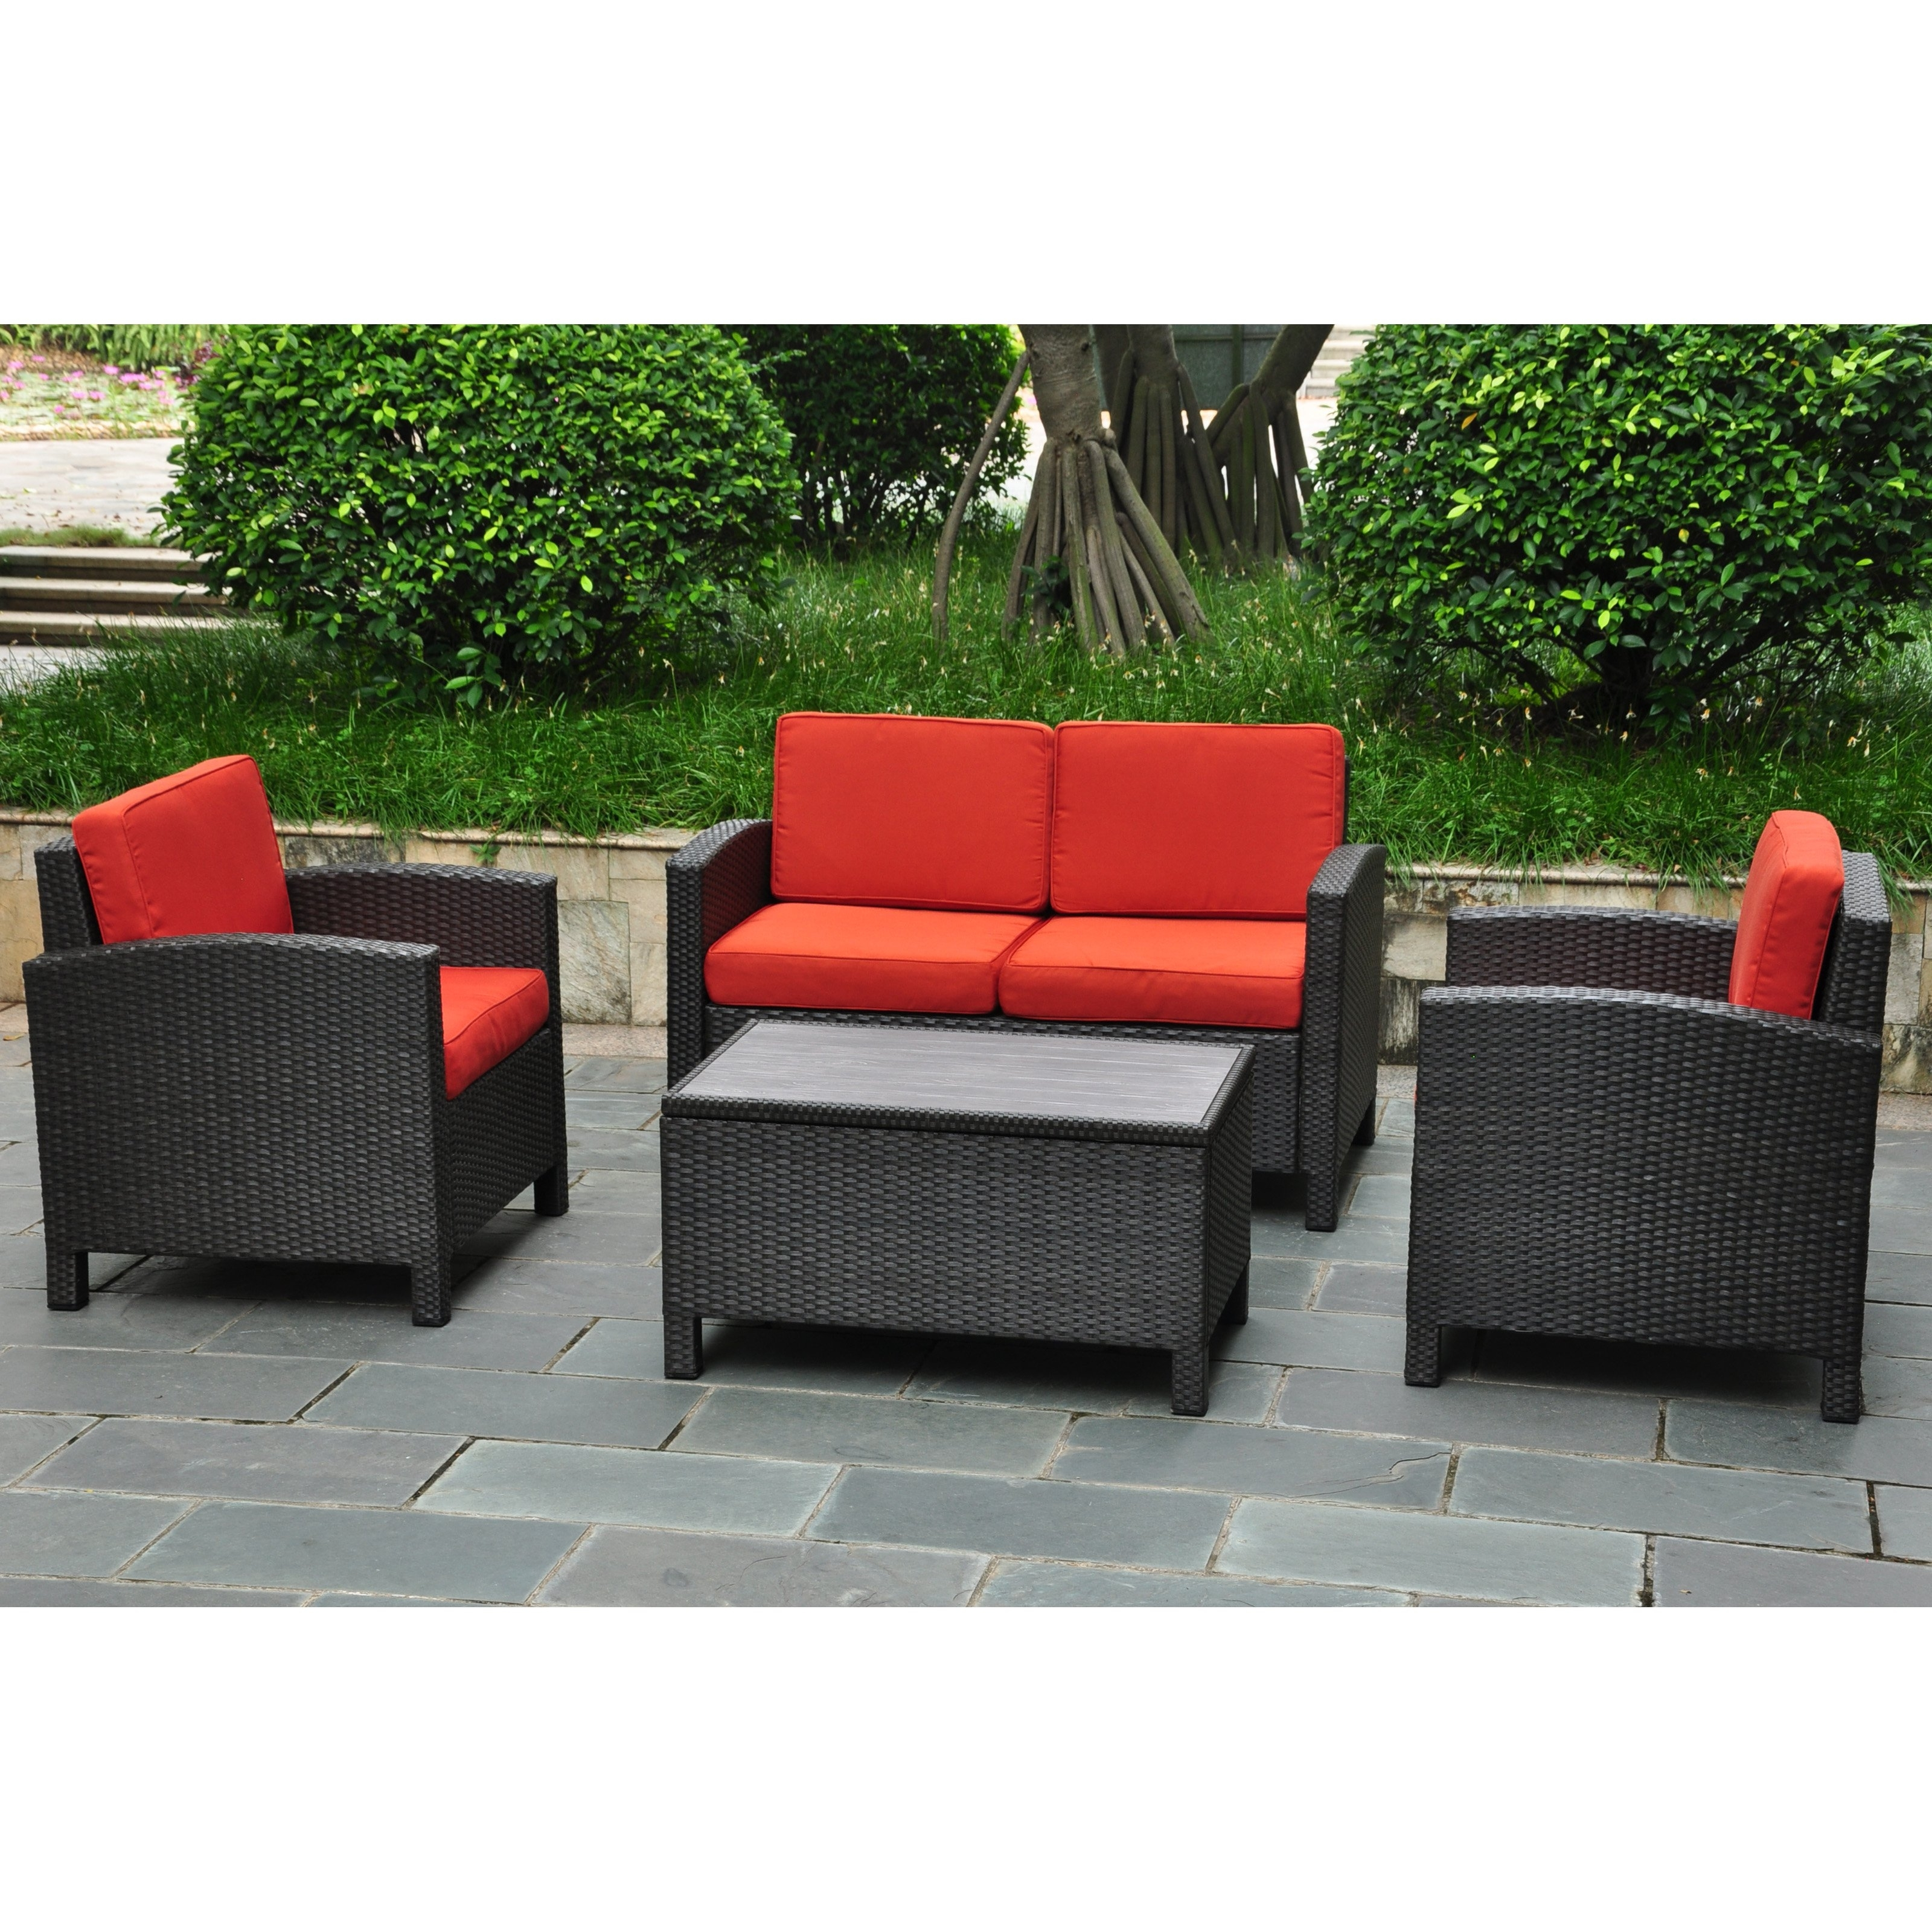 Most Up To Date Patio Conversation Set With Storage For International Caravan Barcelona Resin Wicker Outdoor Patio Set With (View 4 of 15)